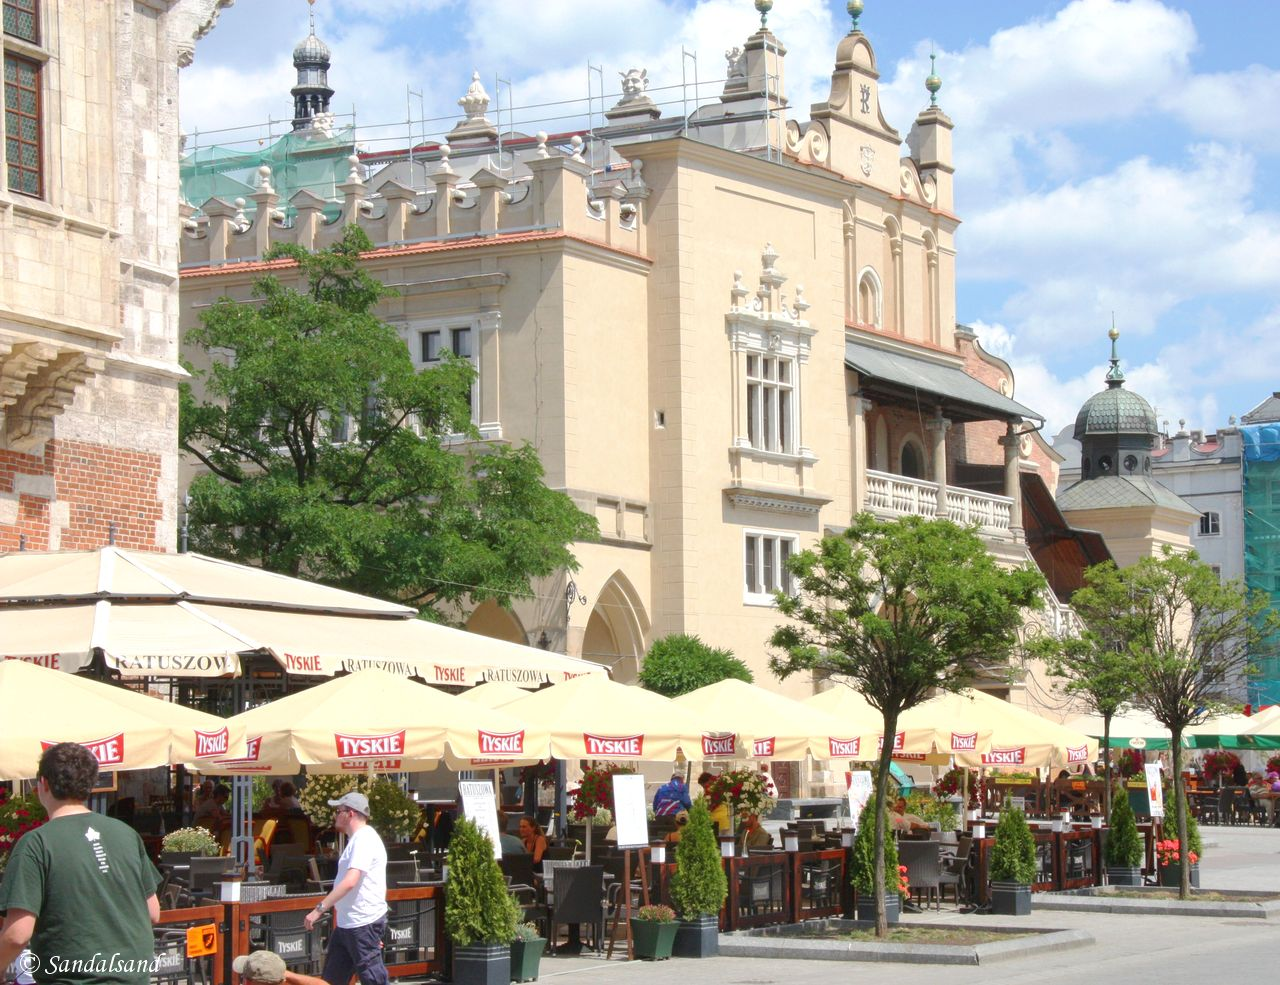 Poland - Krakow - Cloth Hall (Sukiennice) on the Rynek Square